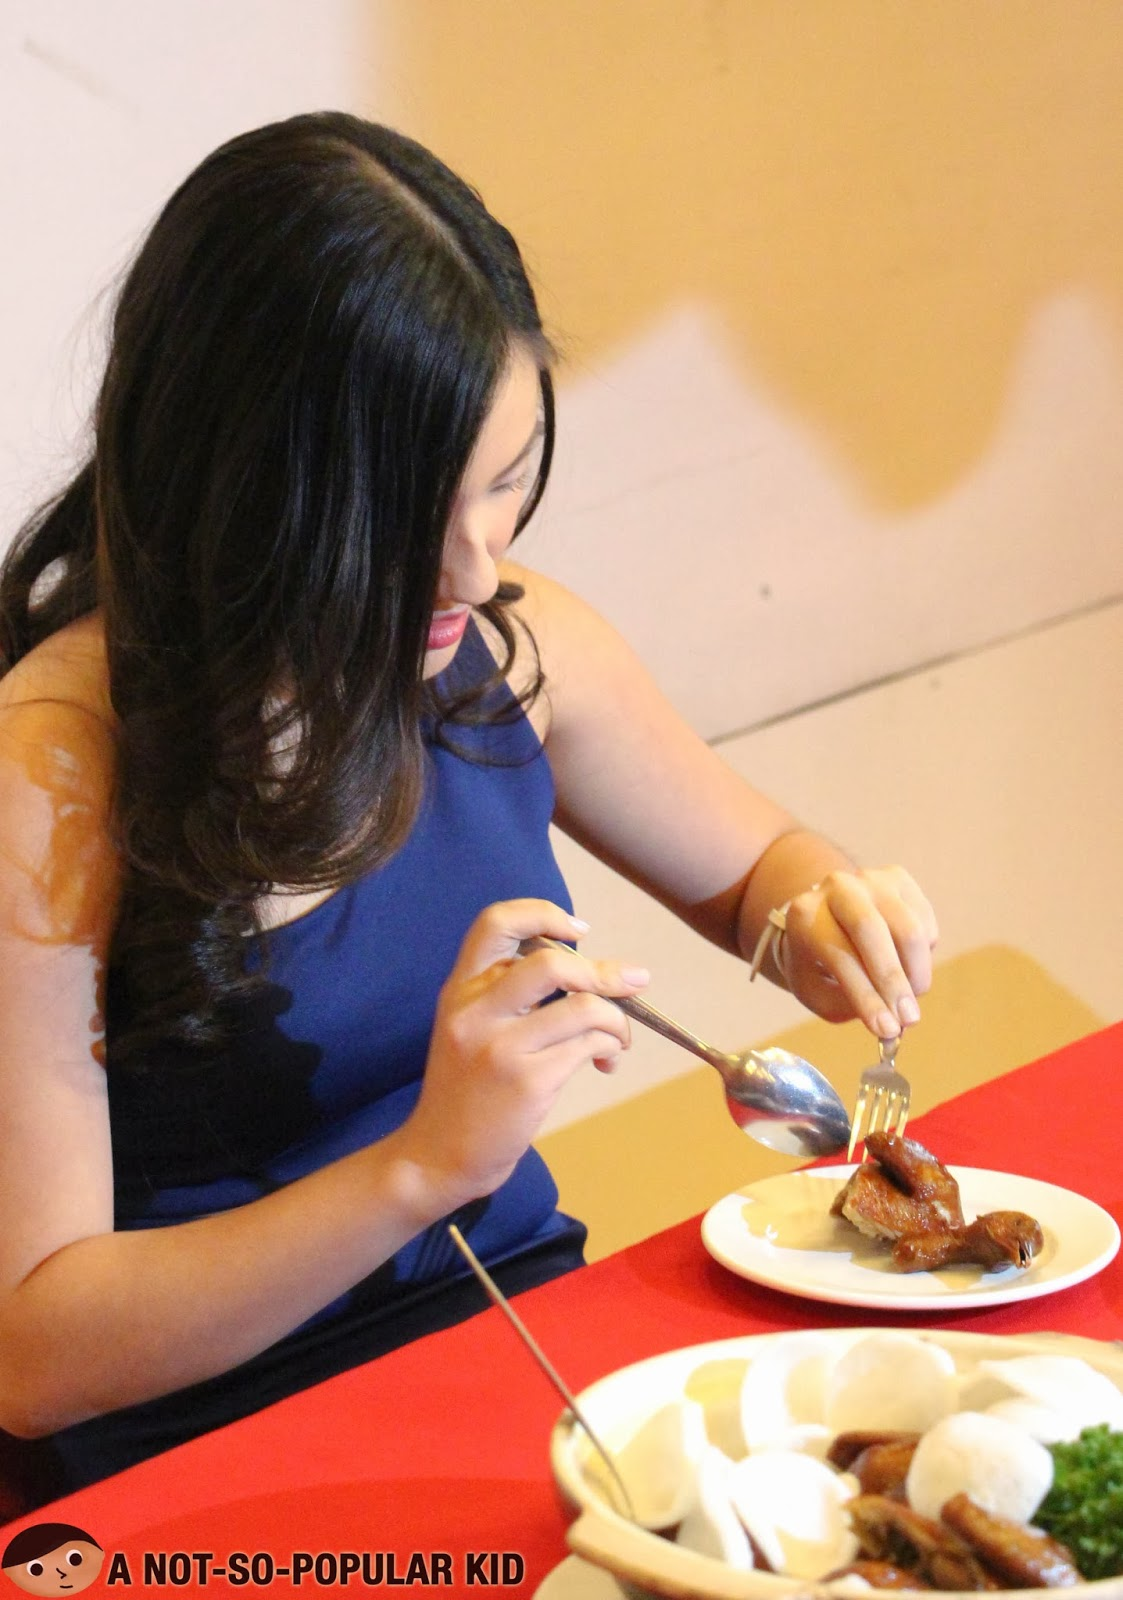 Joyce Ching about to taste the Fried Pigeon for the first Secret Exotic Dish